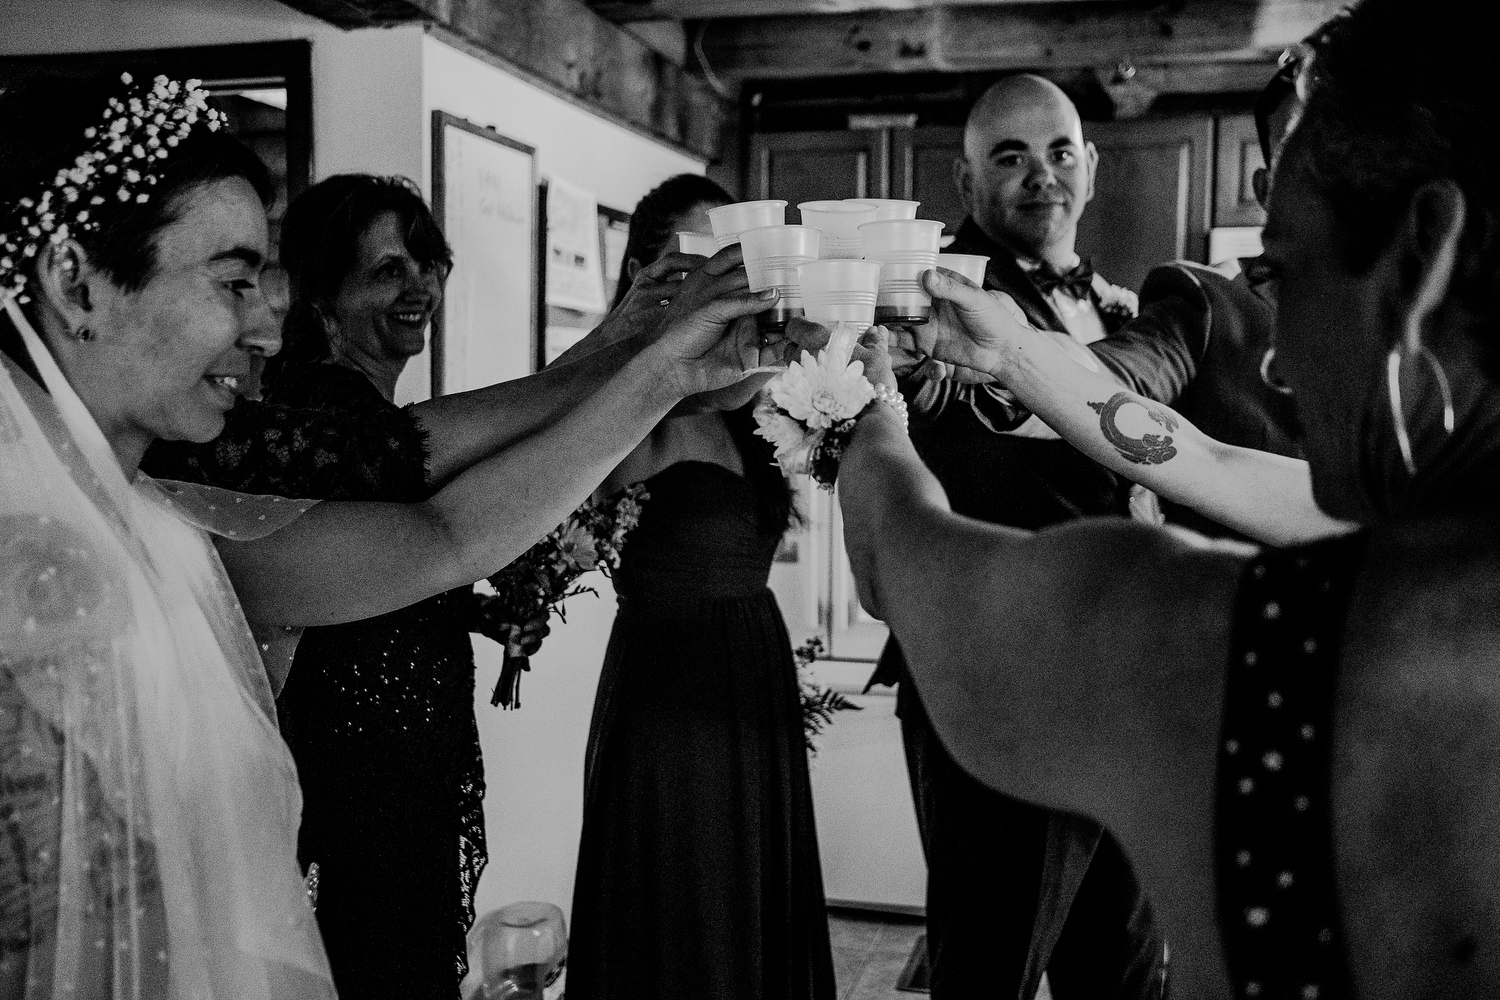 documentary wedding photography moments before ceremony